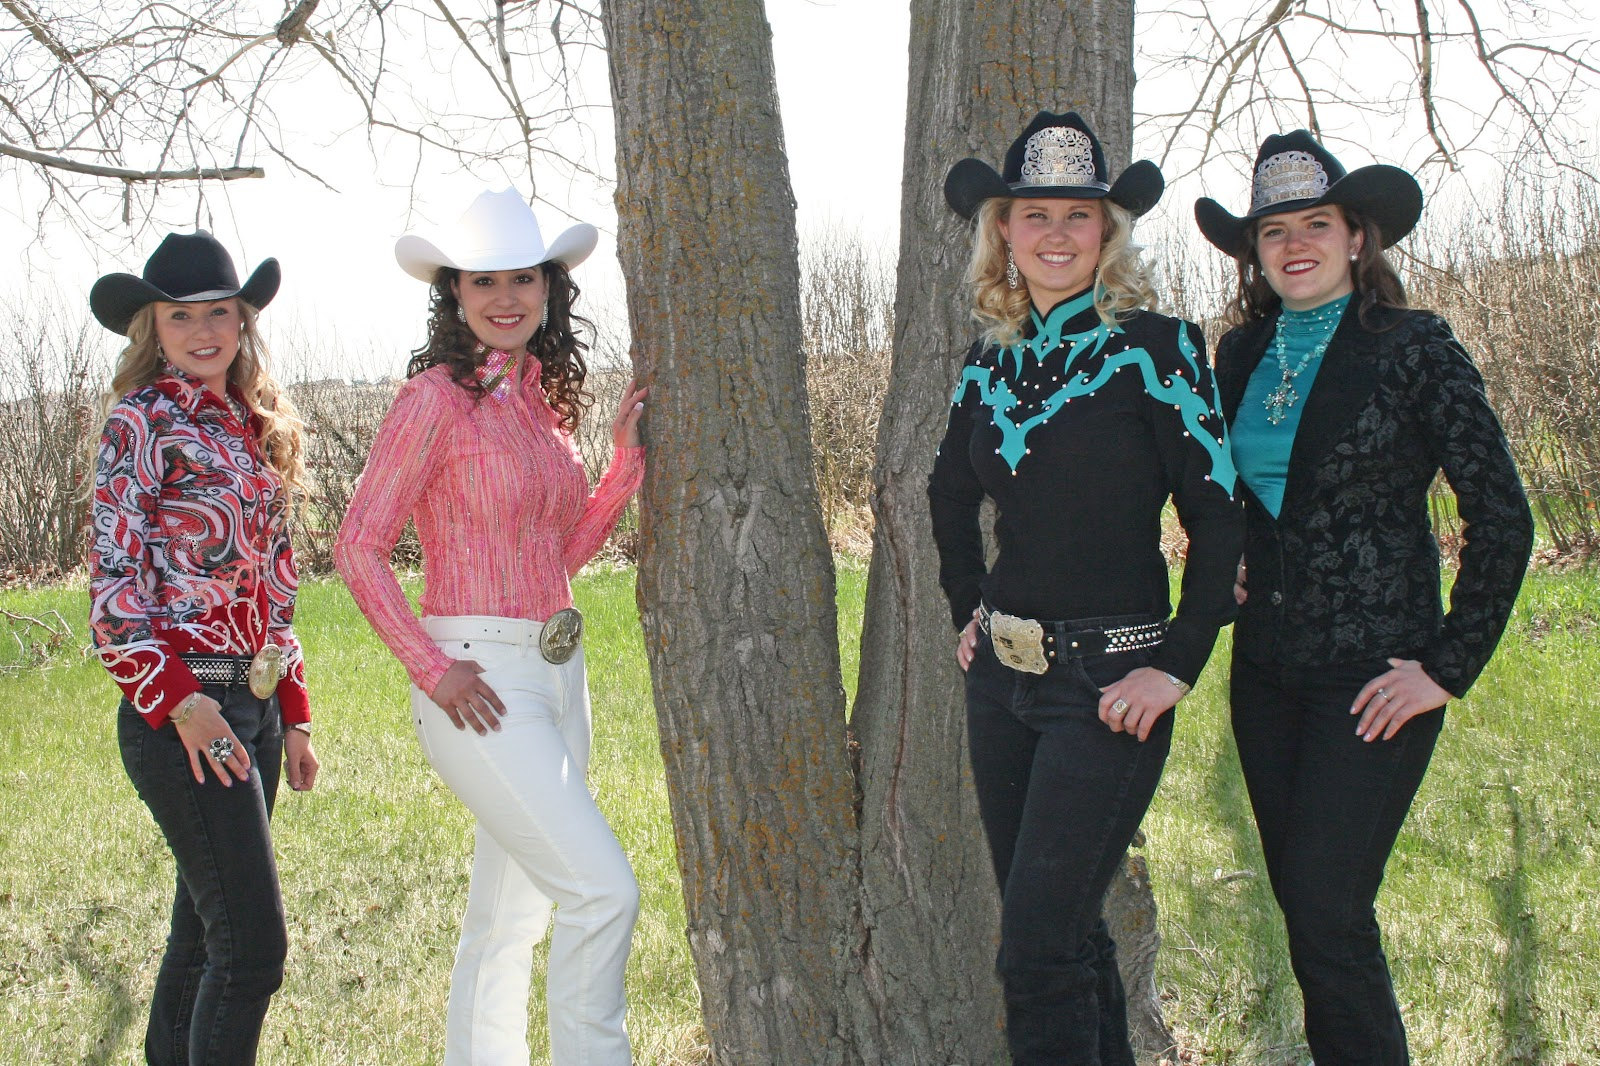 Airdrie Pro Rodeo Royalty 2012 Mra Pageant